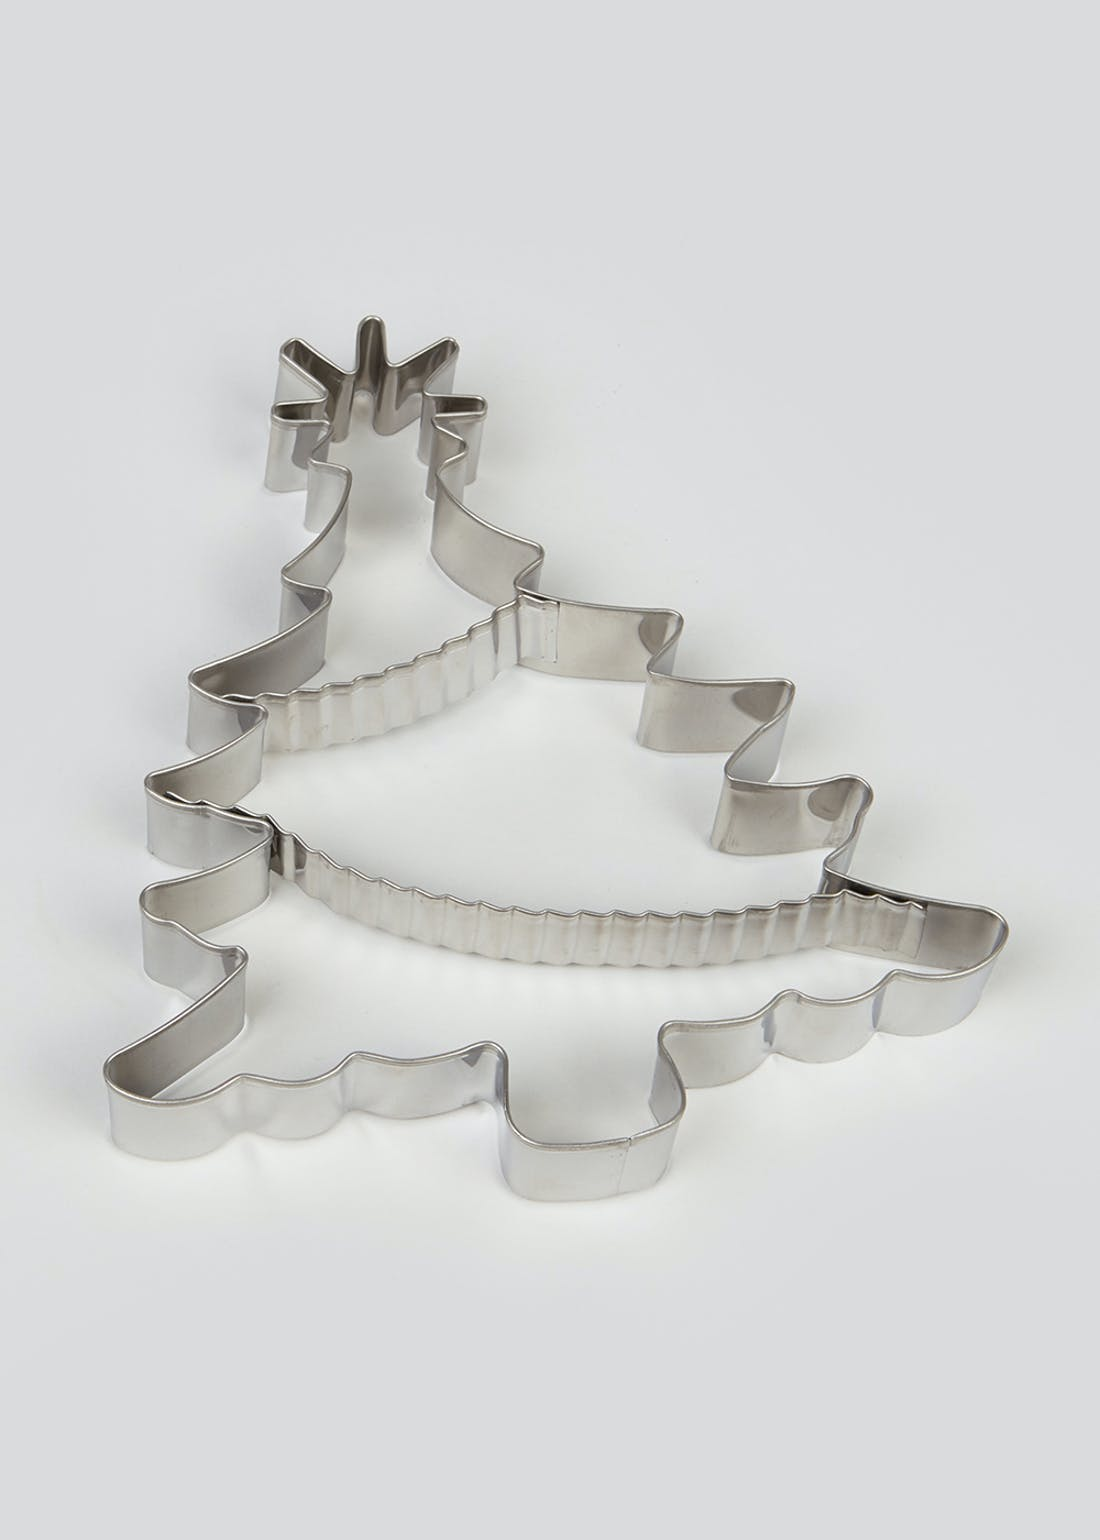 Large Christmas Tree Cookie Cutter (20cm x 18cm x 2.5cm)